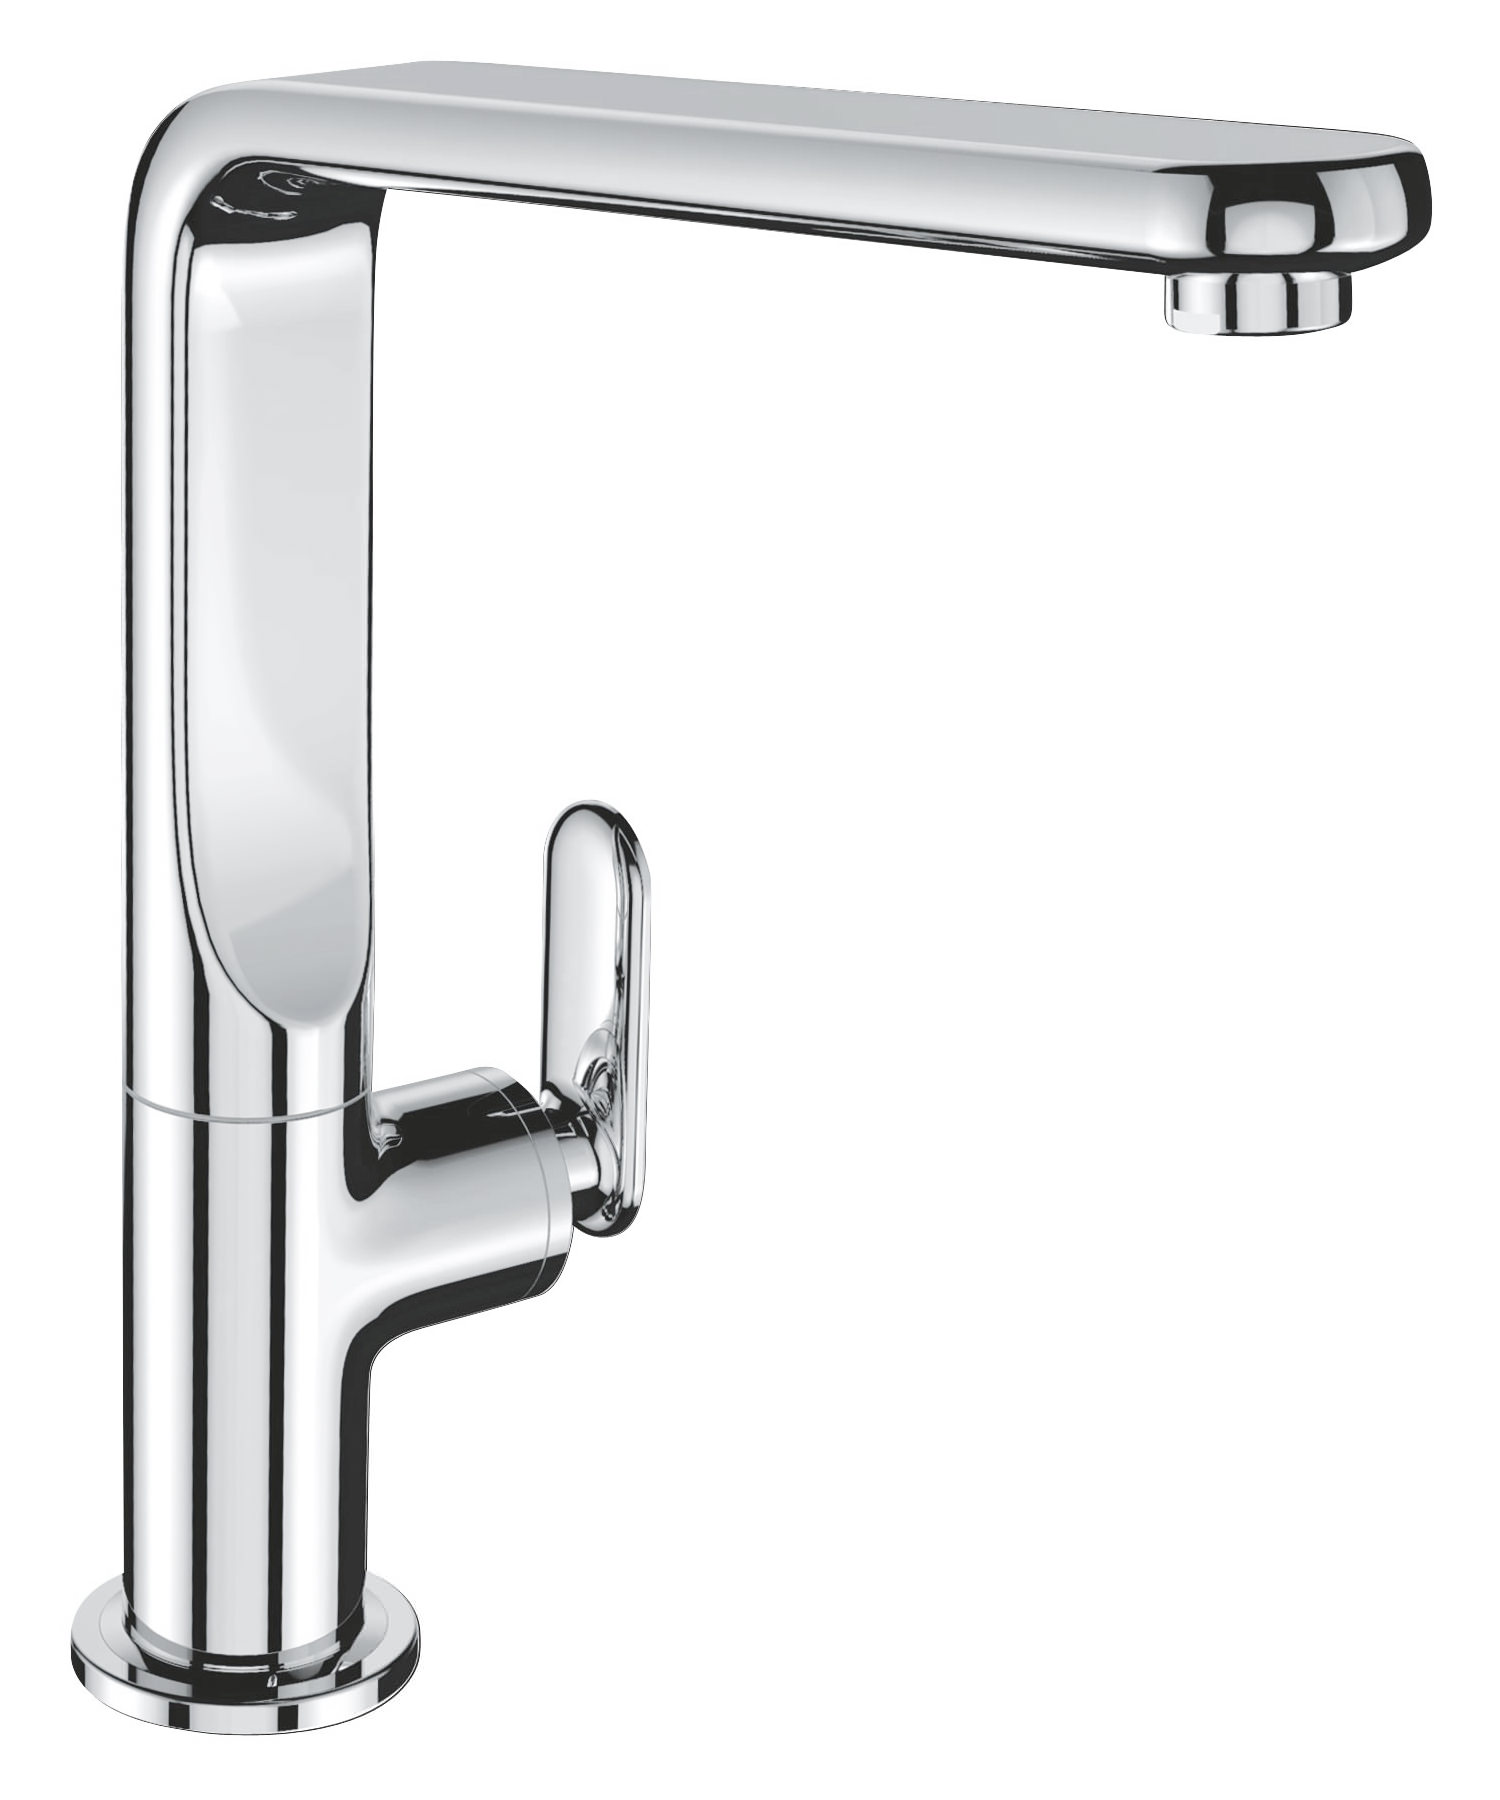 grohe kitchen sink taps grohe veris monobloc chrome kitchen sink mixer tap 32198 000 4103